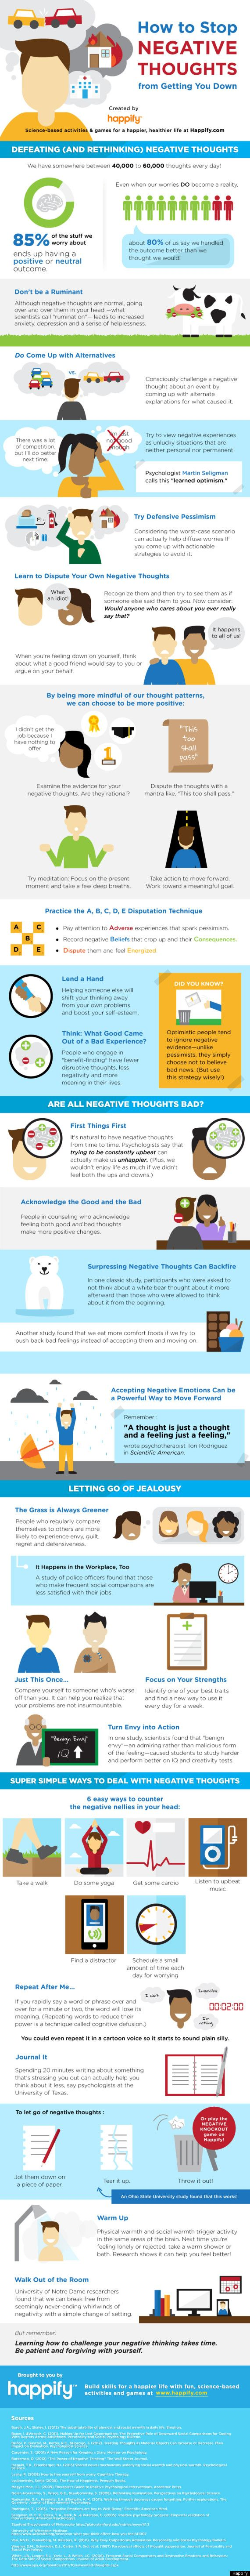 How to defeat those nagging negative thoughts